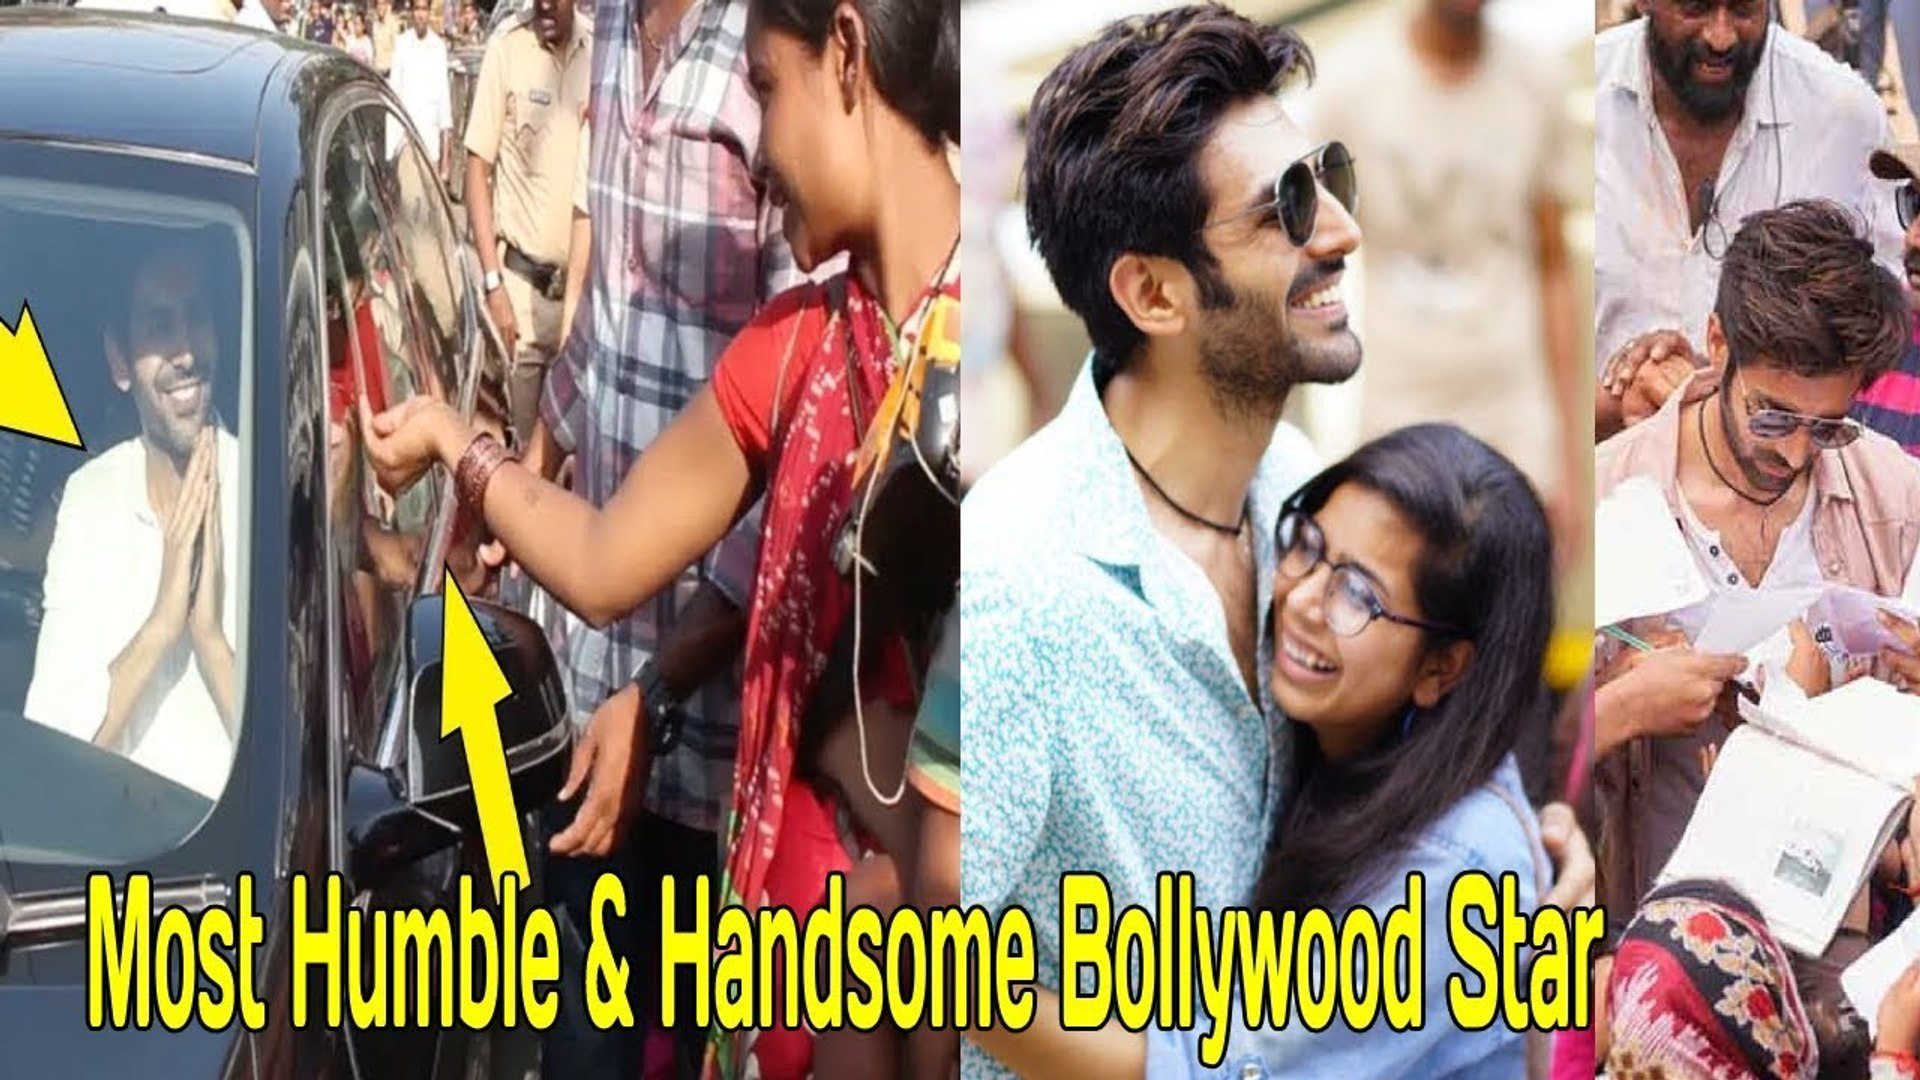 Most Humble & Handsome Bollywood Star Kartik Aryan shows AWESOME Gesture towards FANS & BEGG